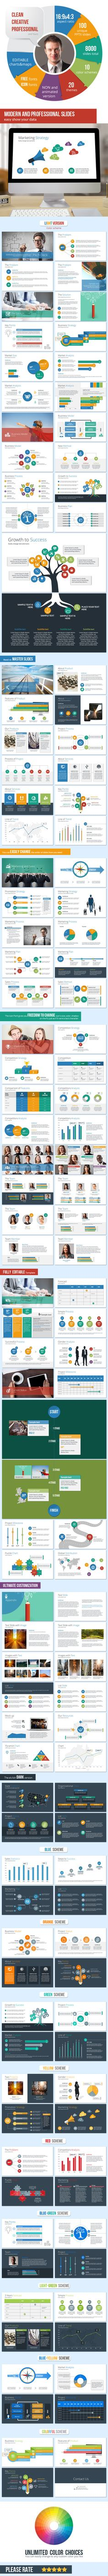 Pitch Deck NY PowerPoint Presentation Template - Business PowerPoint Templates